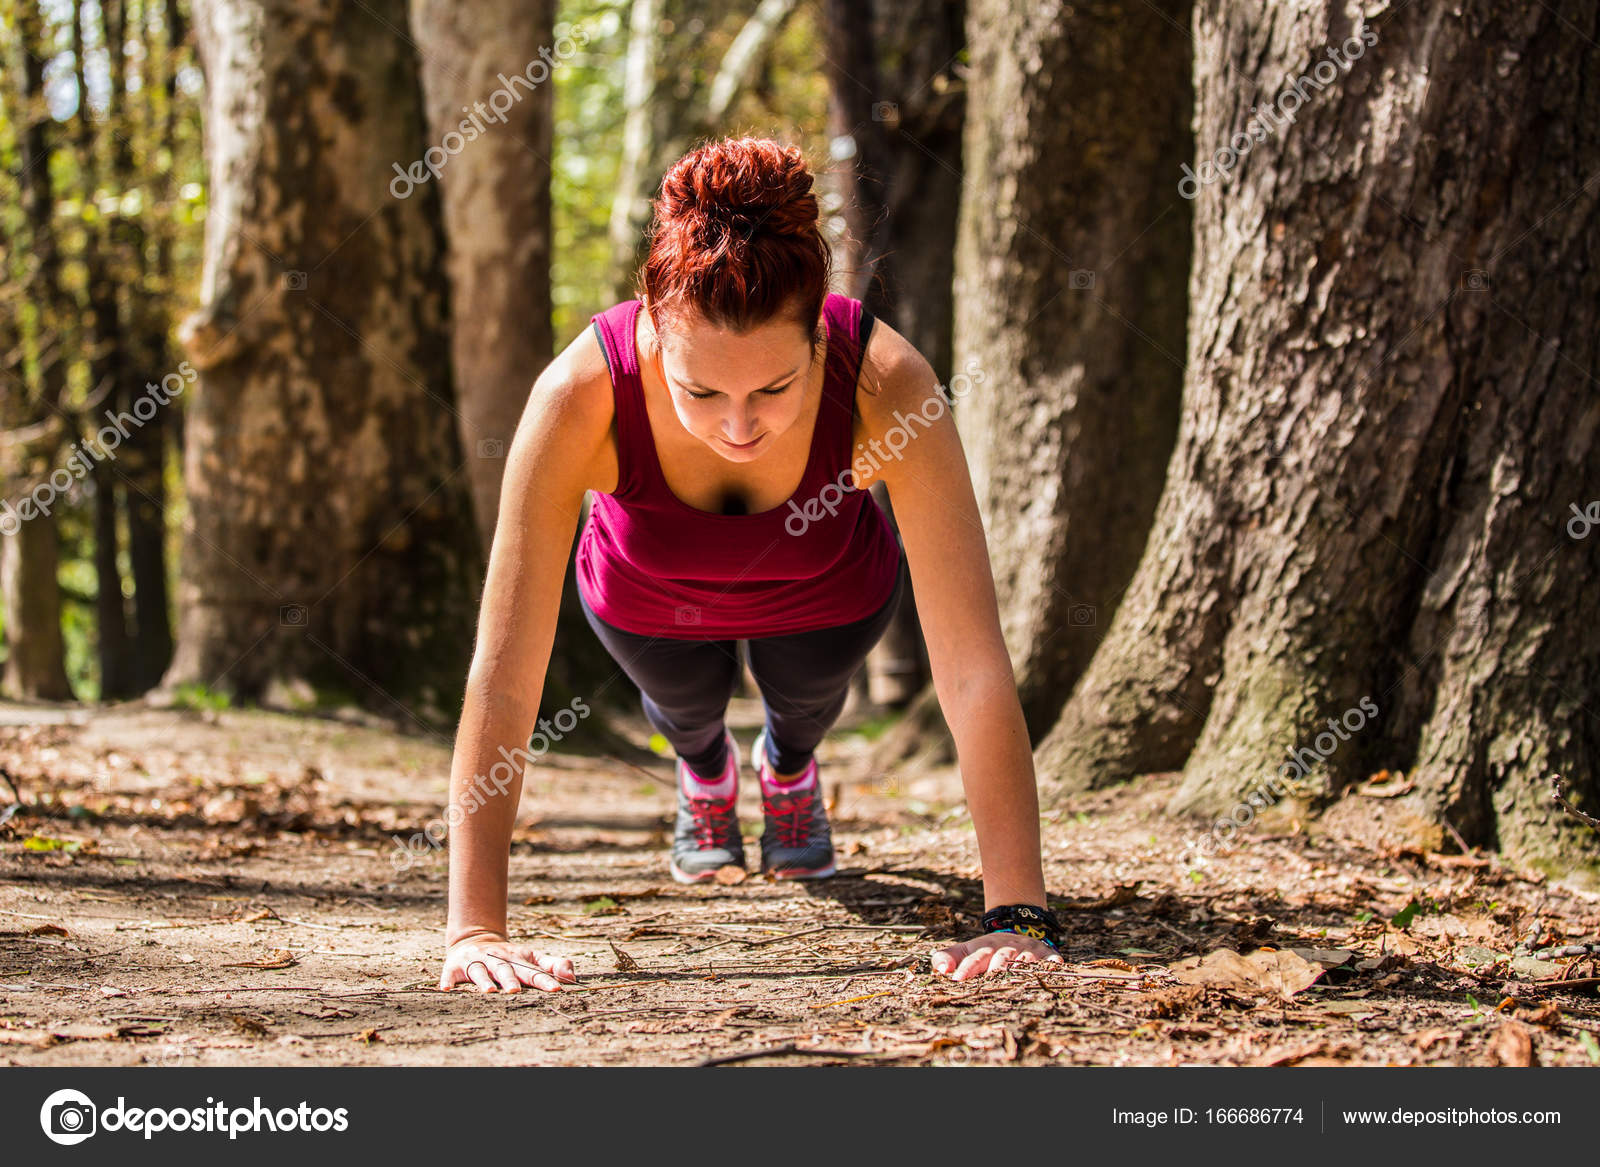 A girlfriend of a good body, doing pushups in the nature after a